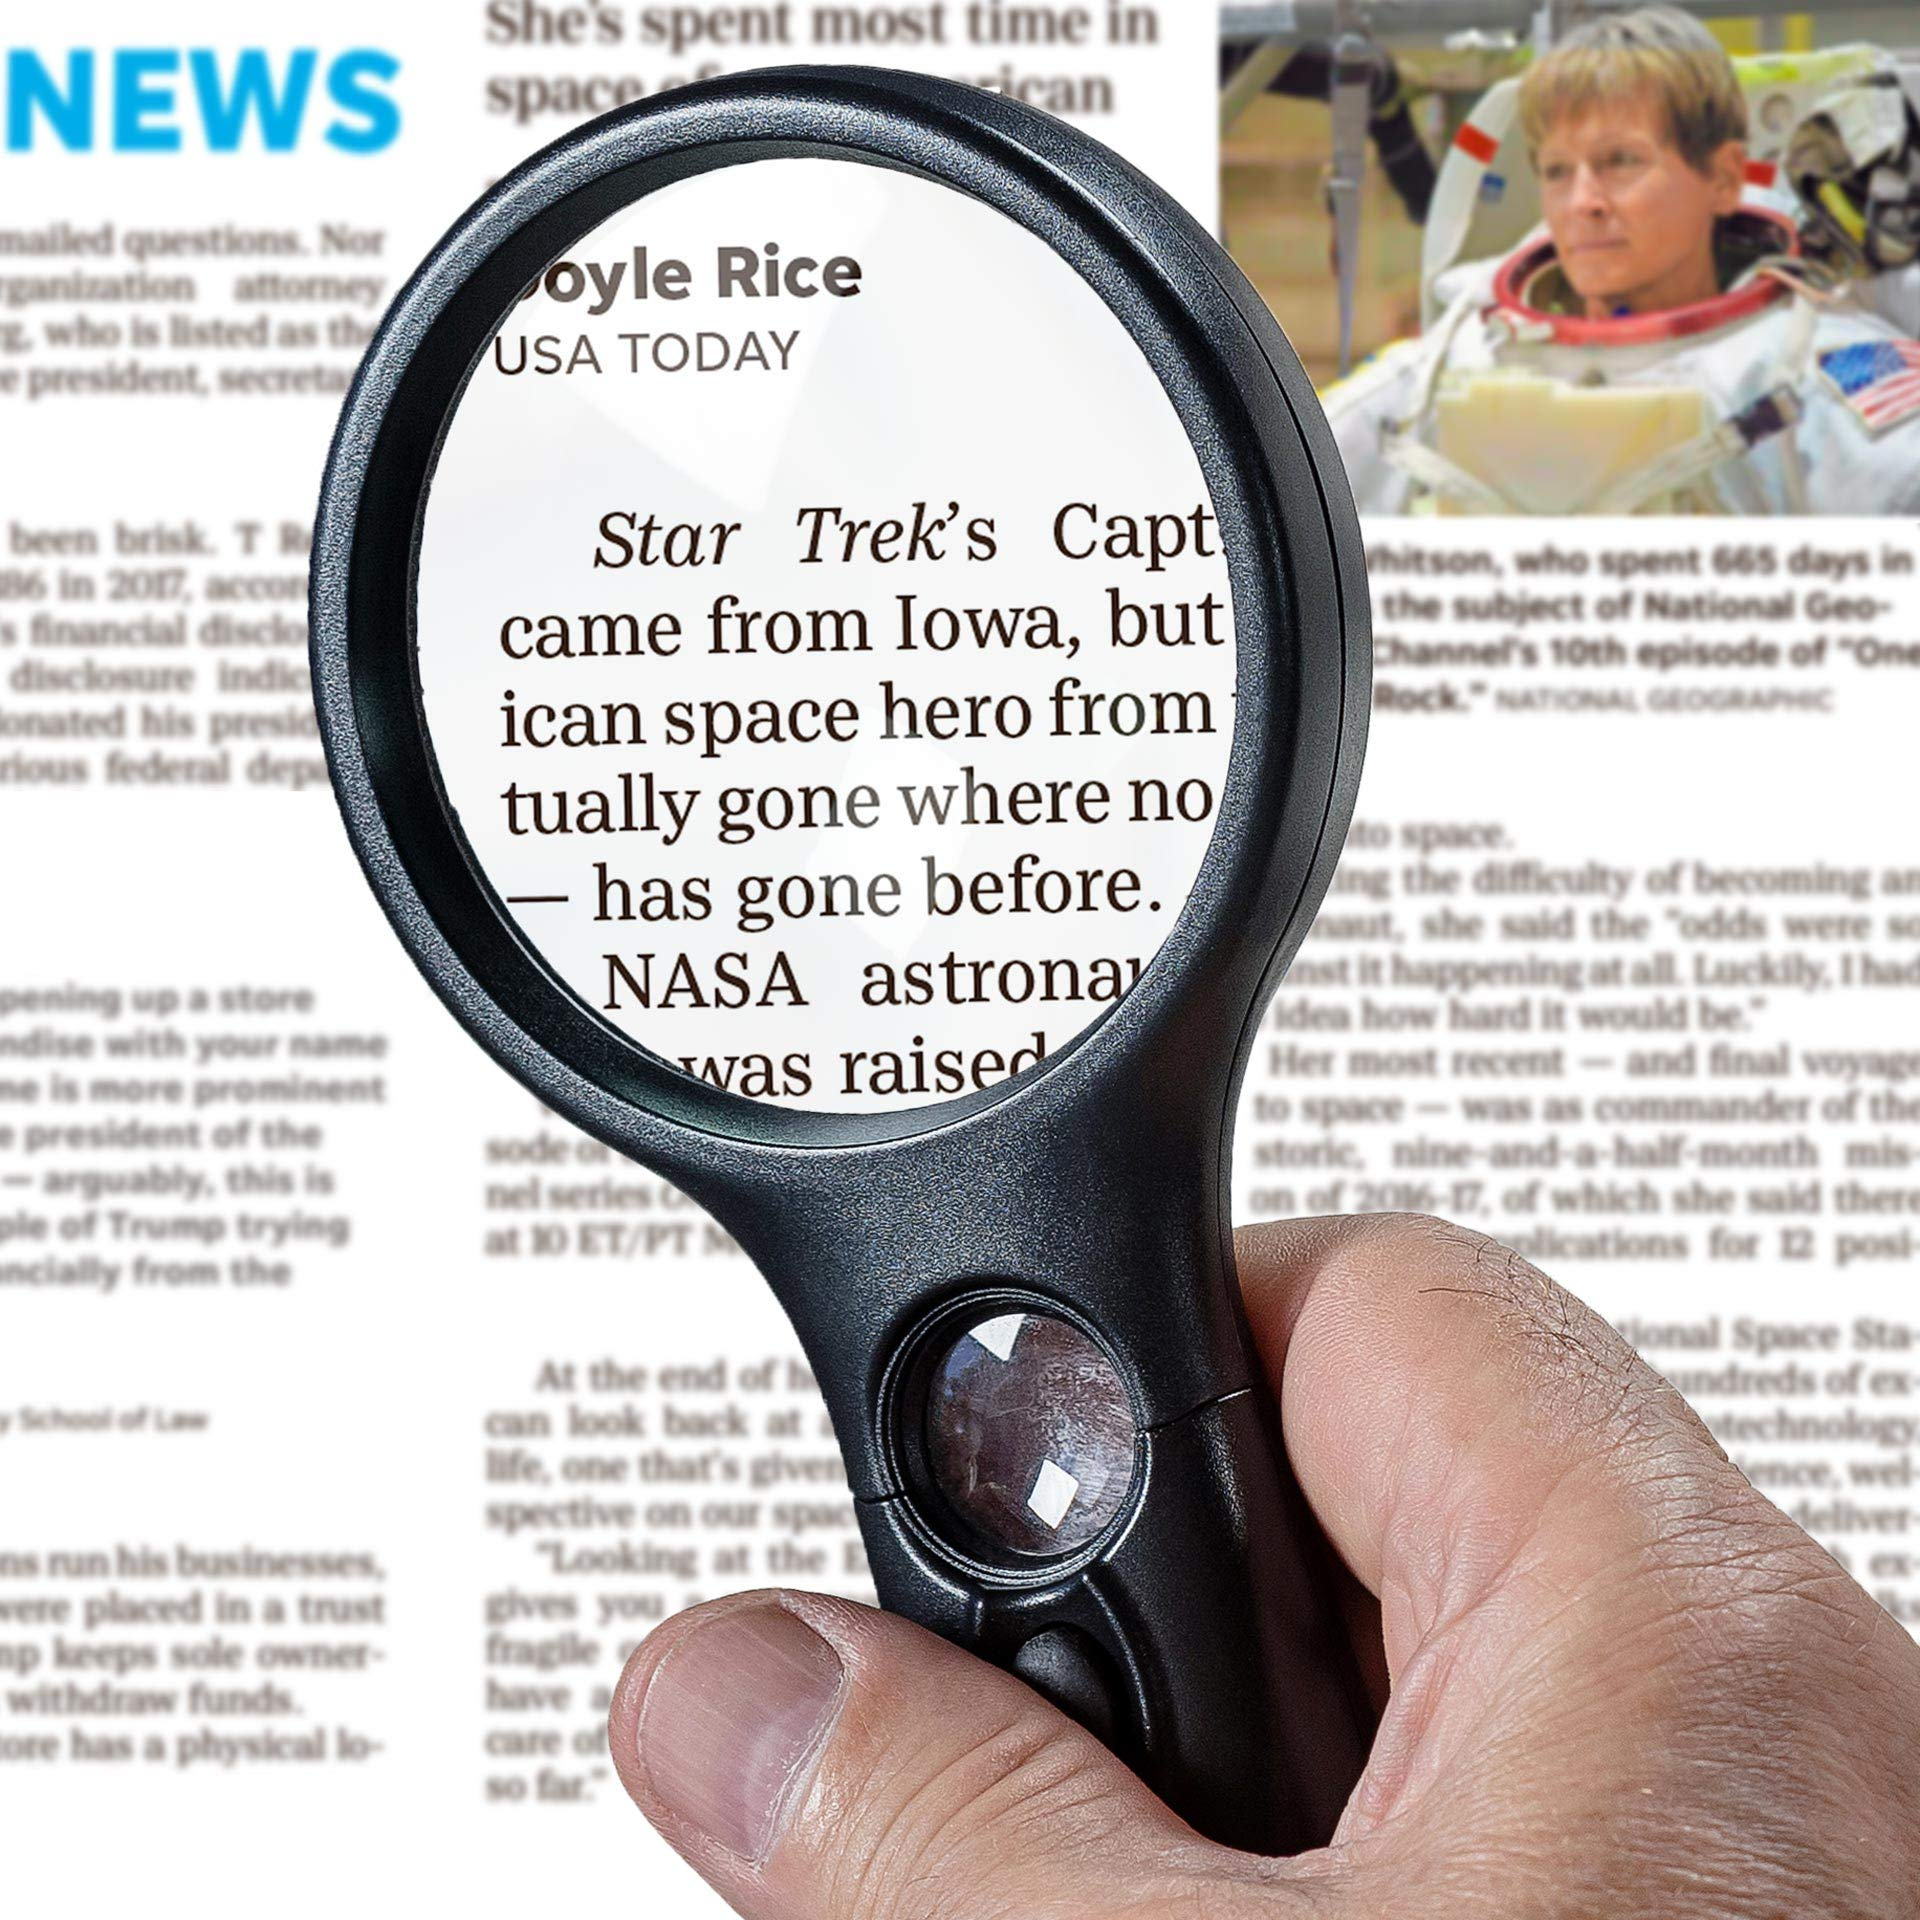 SeeZoom Lighted Magnifying Glass 3X 45x Magnifier Lens - Handheld Magnifying Glass with Light for Reading Small Prints, map, Coins and Jewelry - LED Magnifying Glass by seezoom